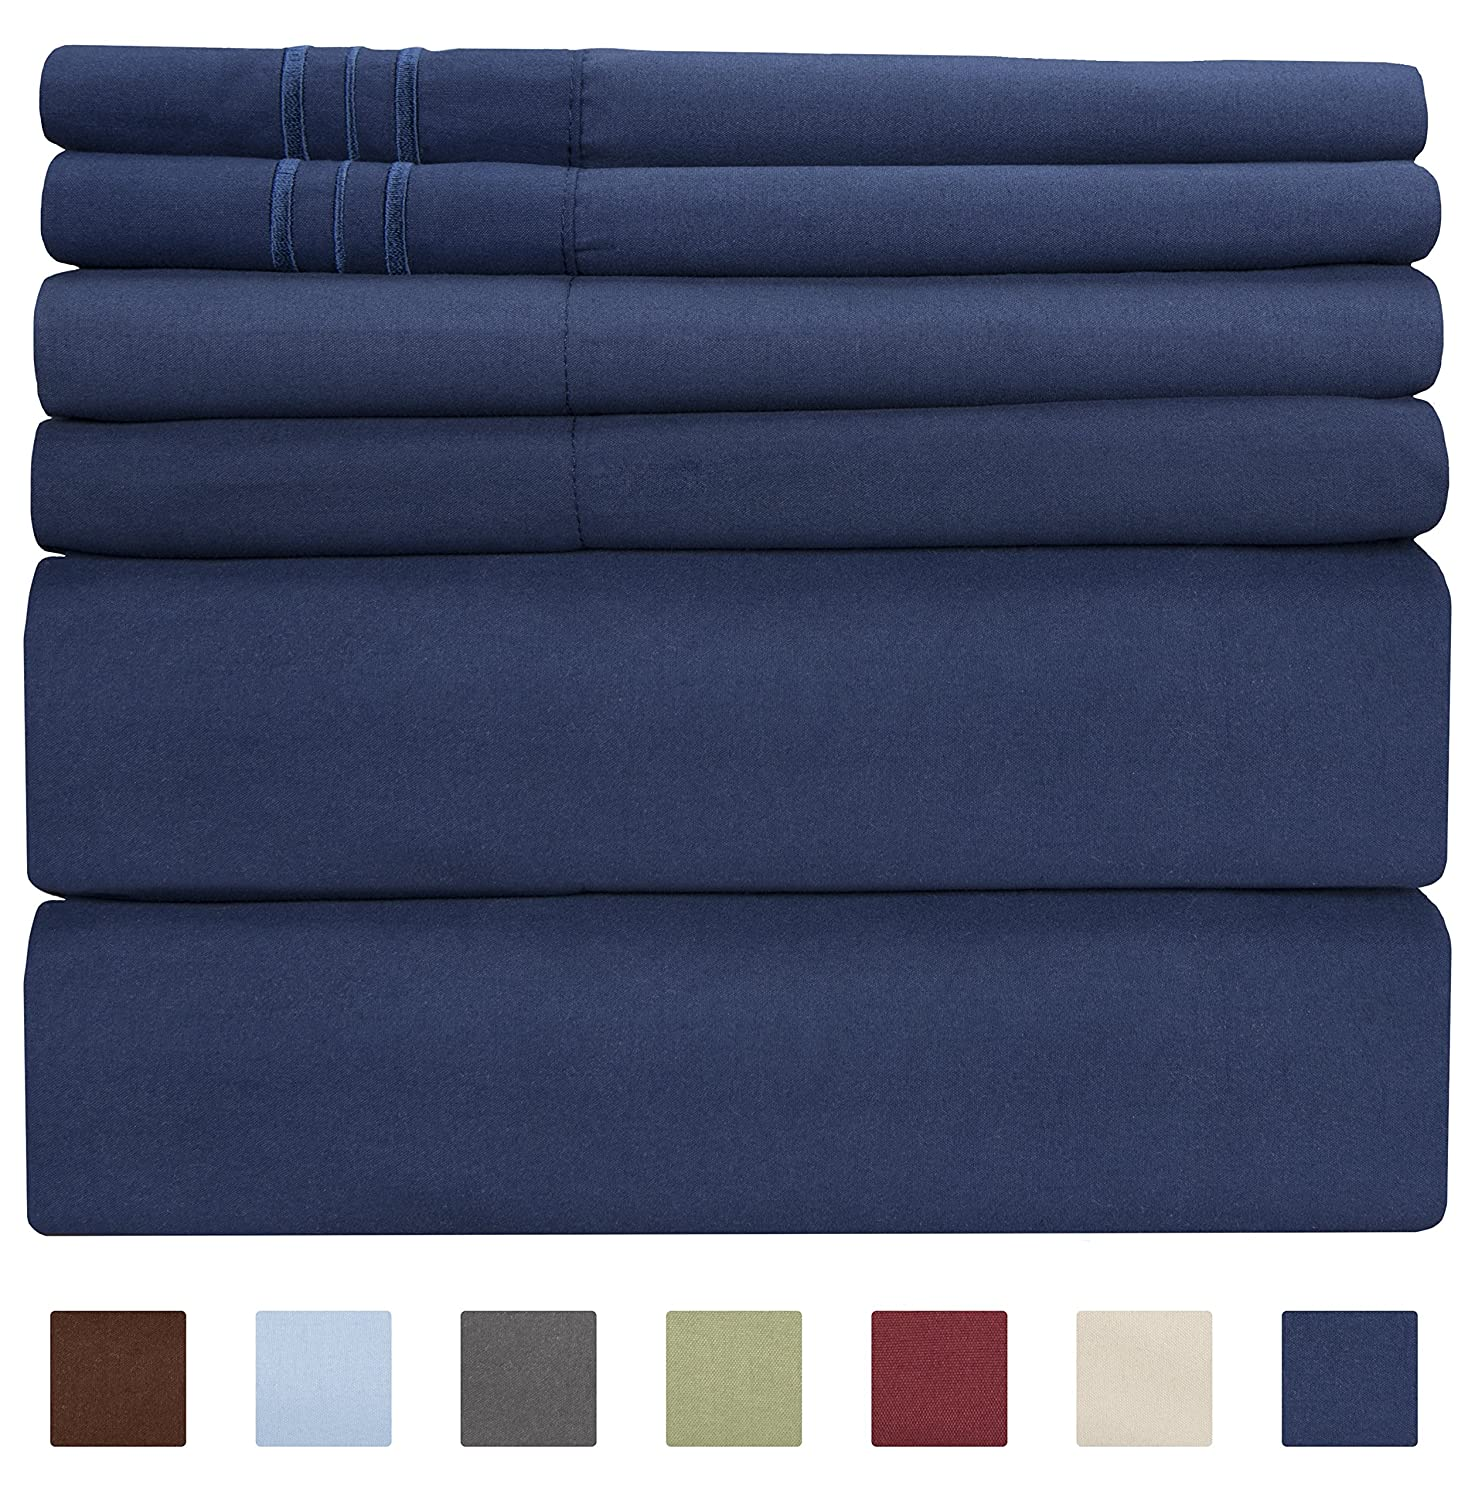 Full Size Sheet Set - 6 Piece Set - Hotel Luxury Bed Sheets - Extra Soft